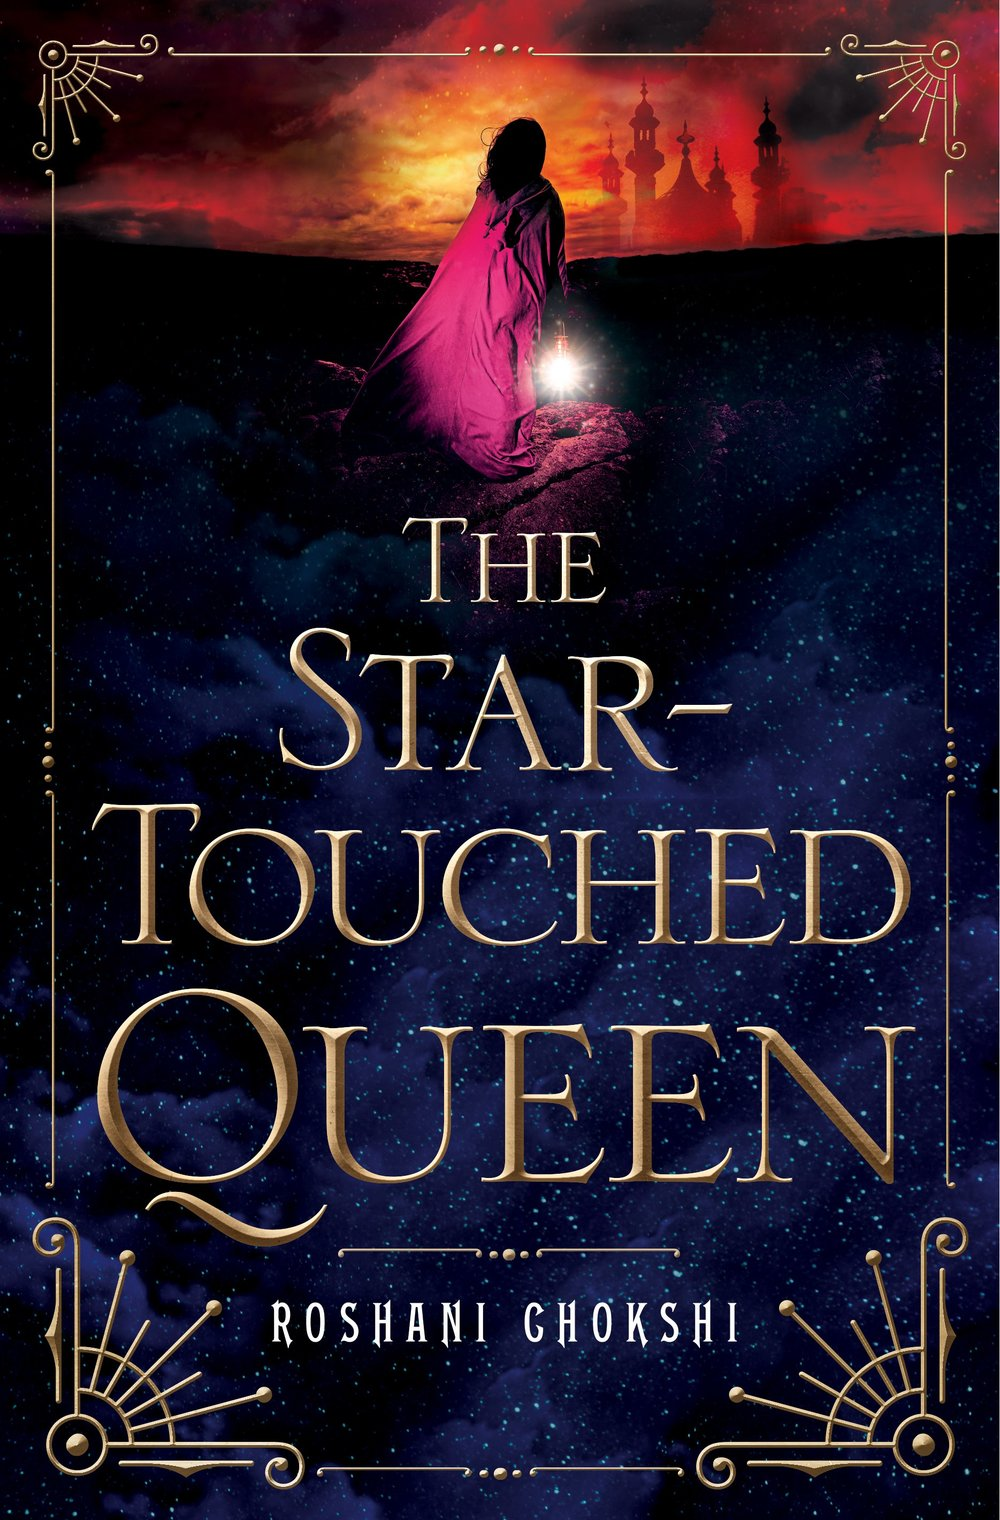 REVISED-Star-touched-Queen-cover.jpg